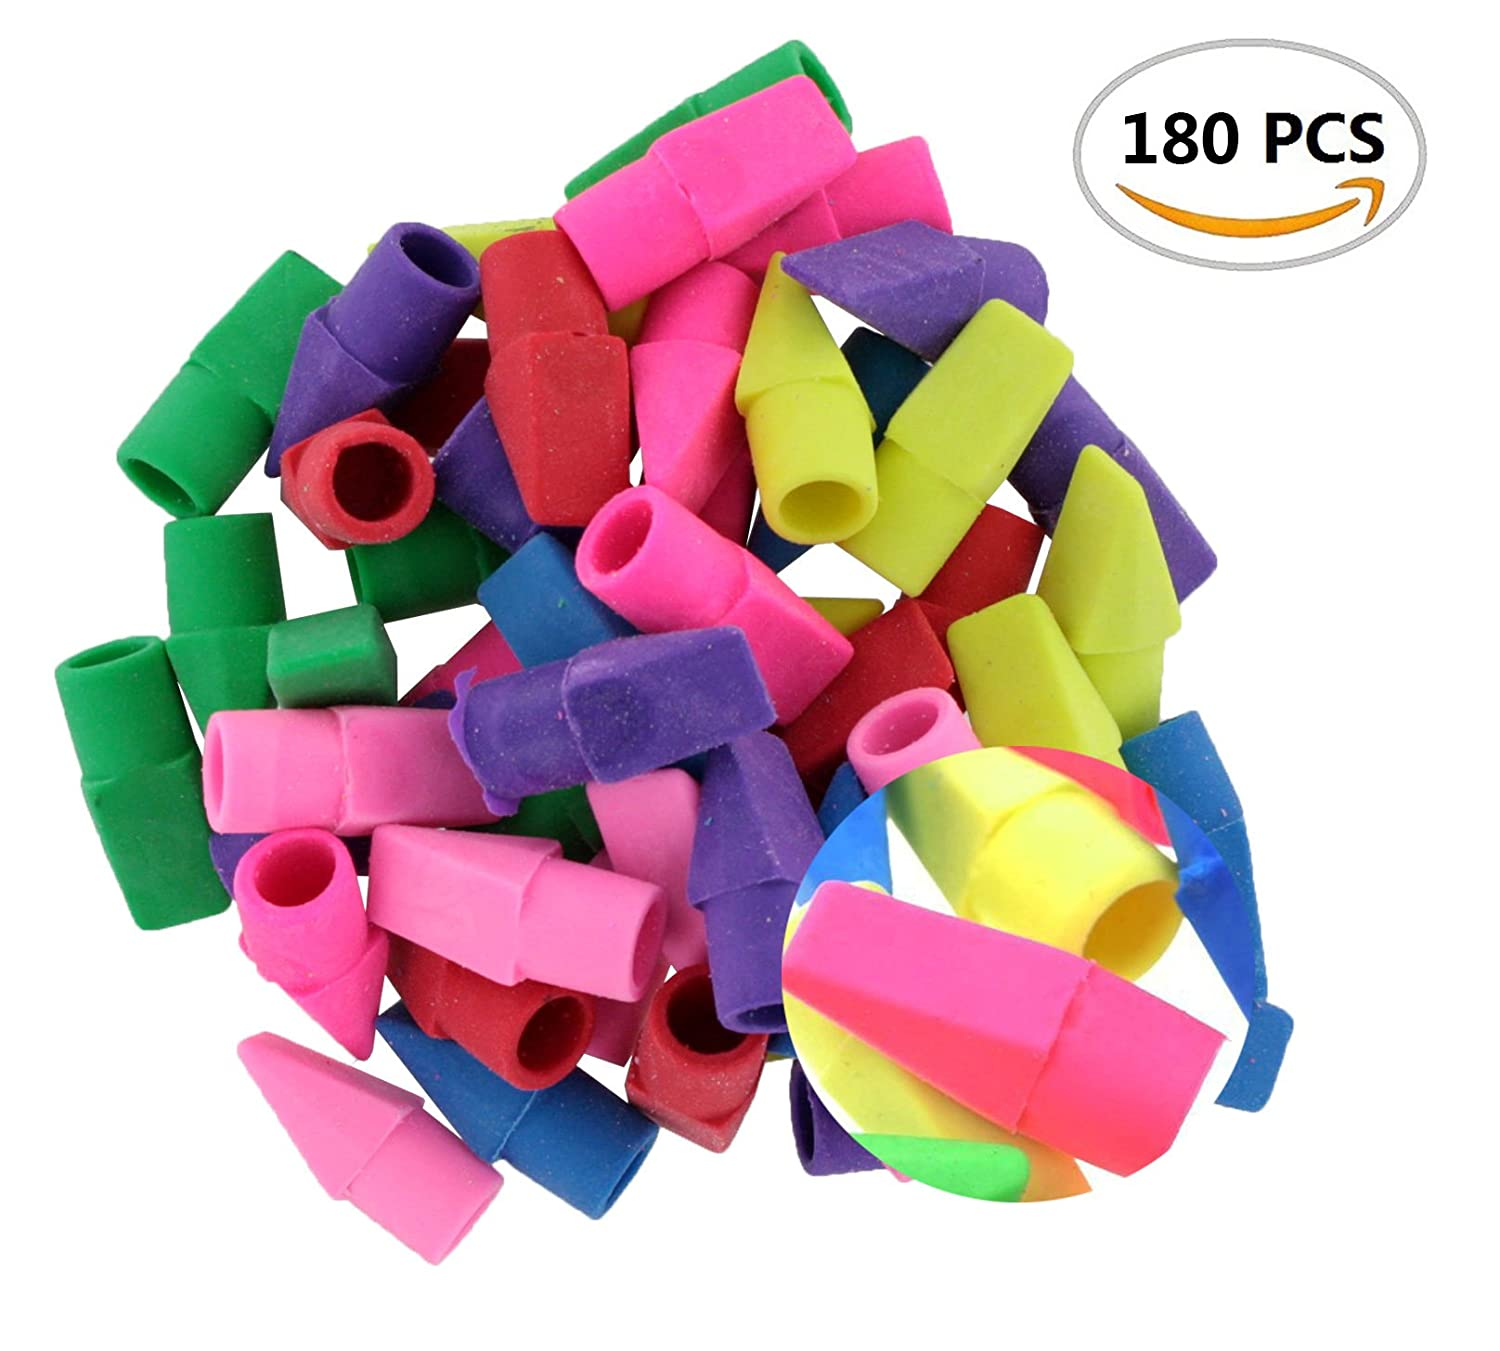 180PCS IFfree Eraser Caps Assorted Colors,Fun Color for Fun Learning NEW.Assorted Colors-Red, Yellow, Green, Blue, Purple, Orange.